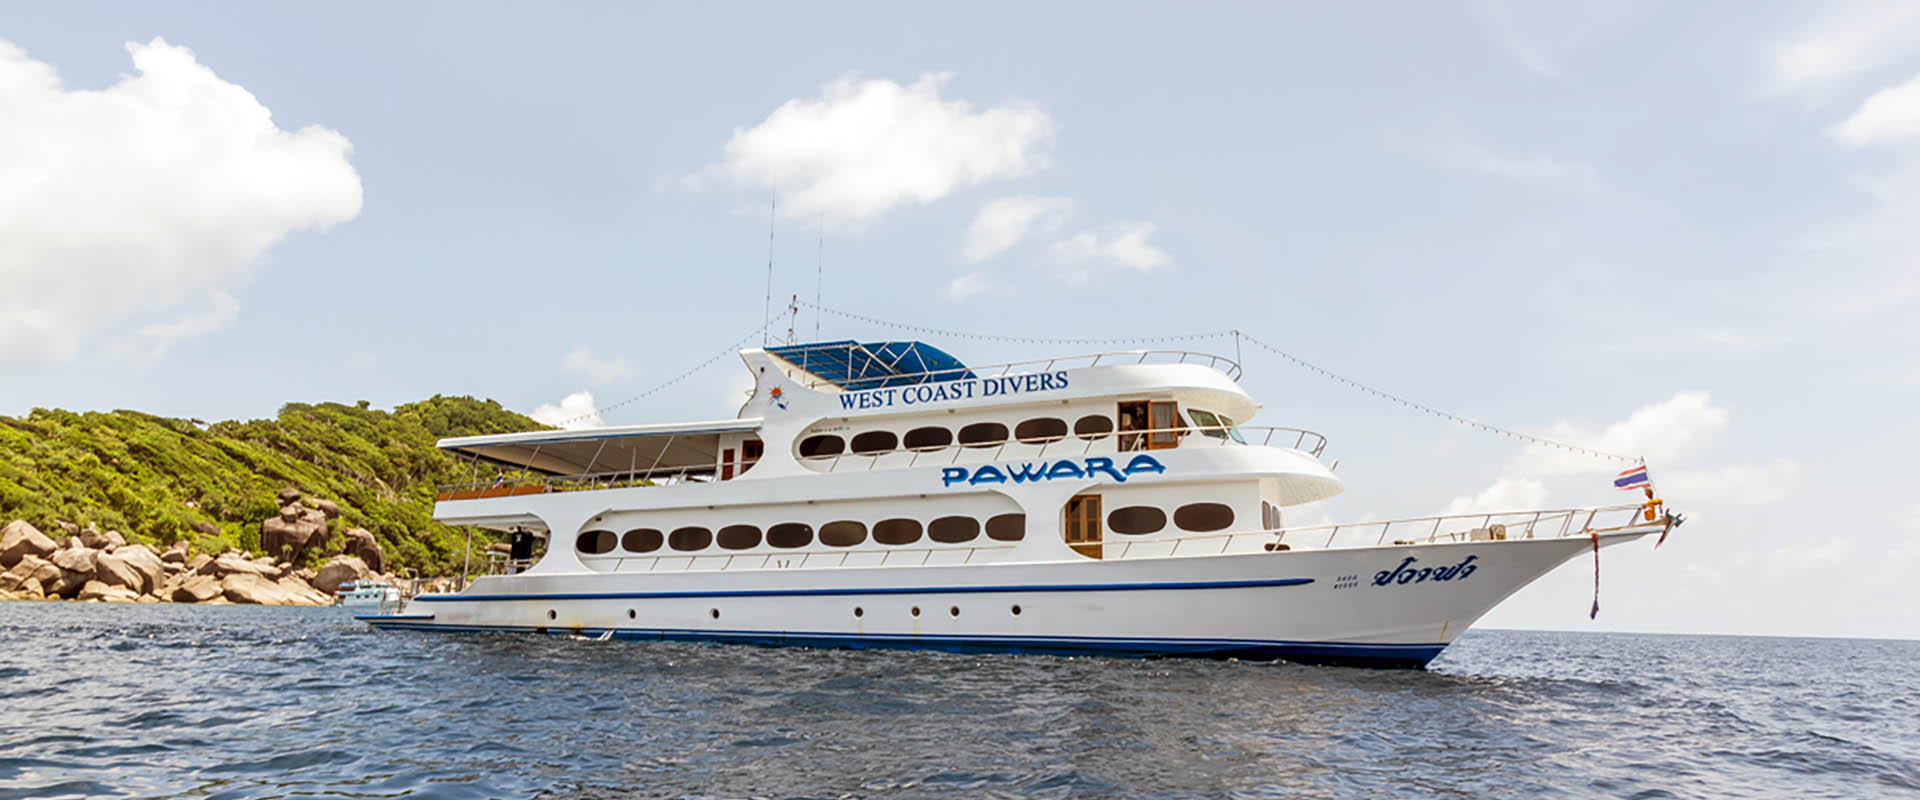 West Coast Divers Liveaboard Fleet